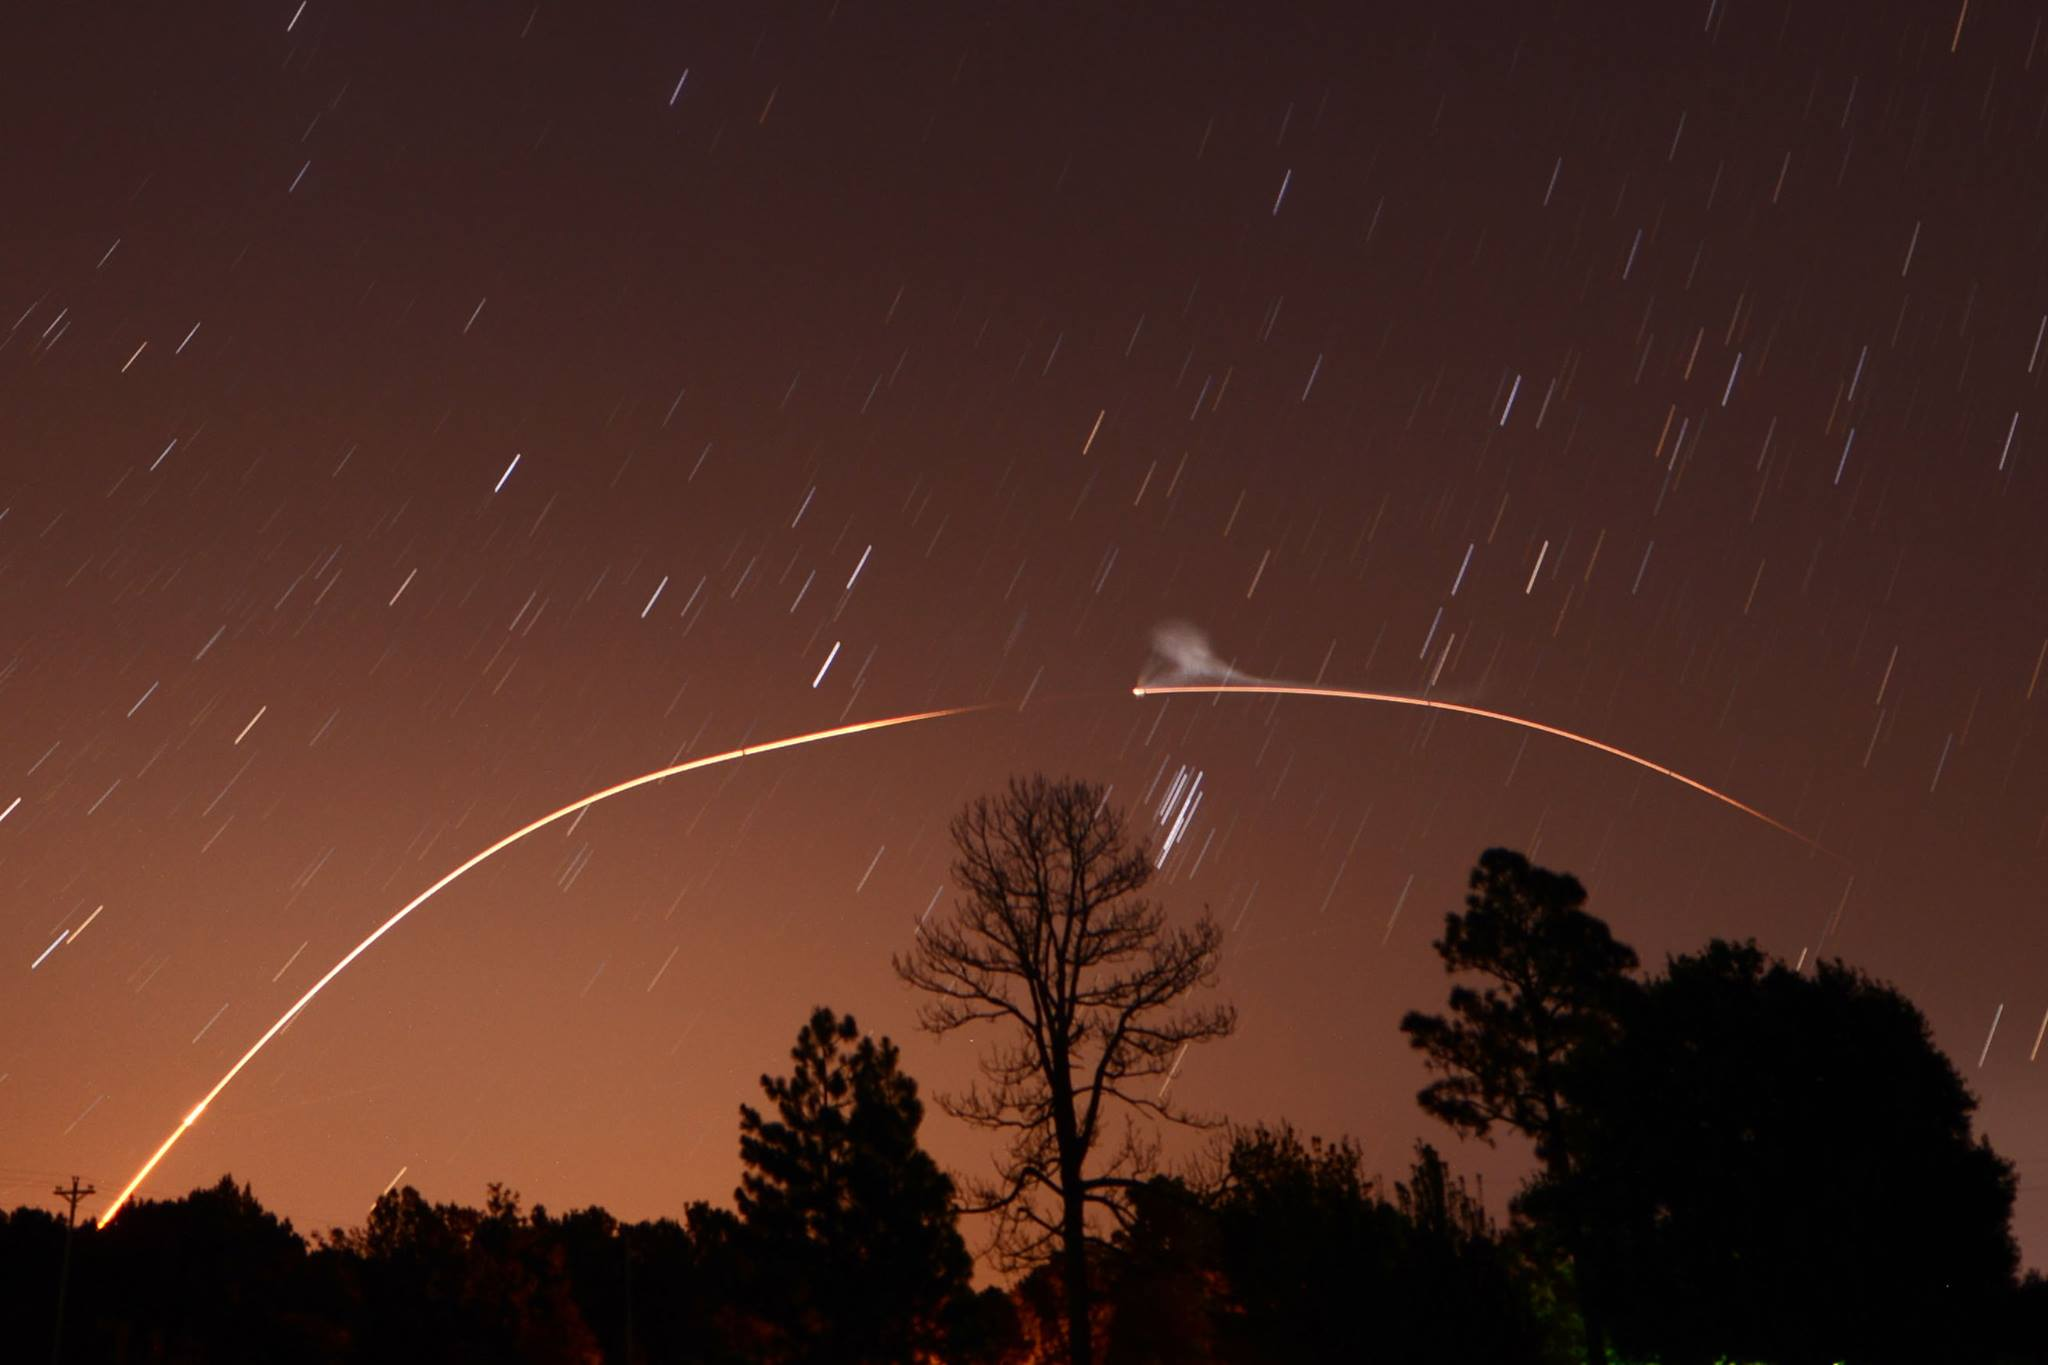 LADEE launch to the moon as seen over northeastern North Carolina by EarthSky Facebook friend Ken Christison. Thanks, Ken!